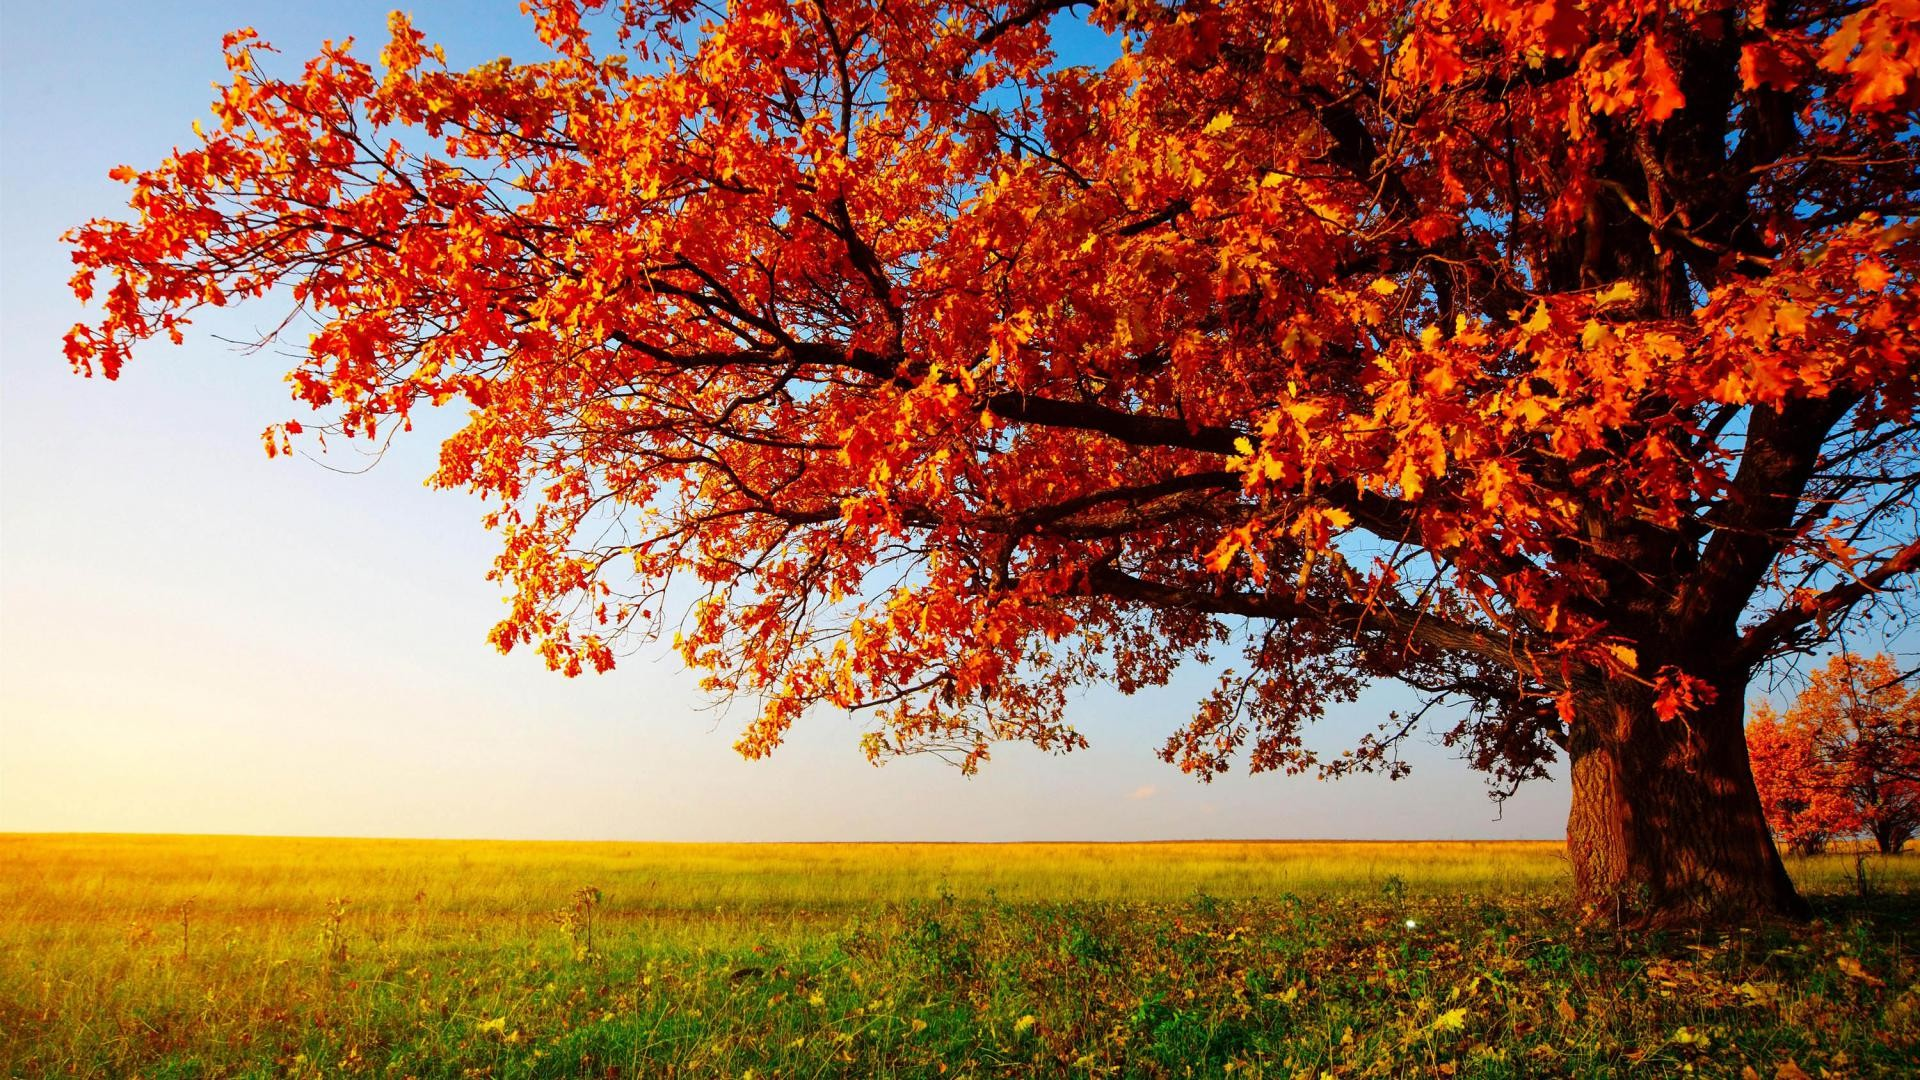 Beautiful Autumn Wallpaper For Interior Wall Decor Idea: Autumn Leaves  Wallpaper With Nice Garden View